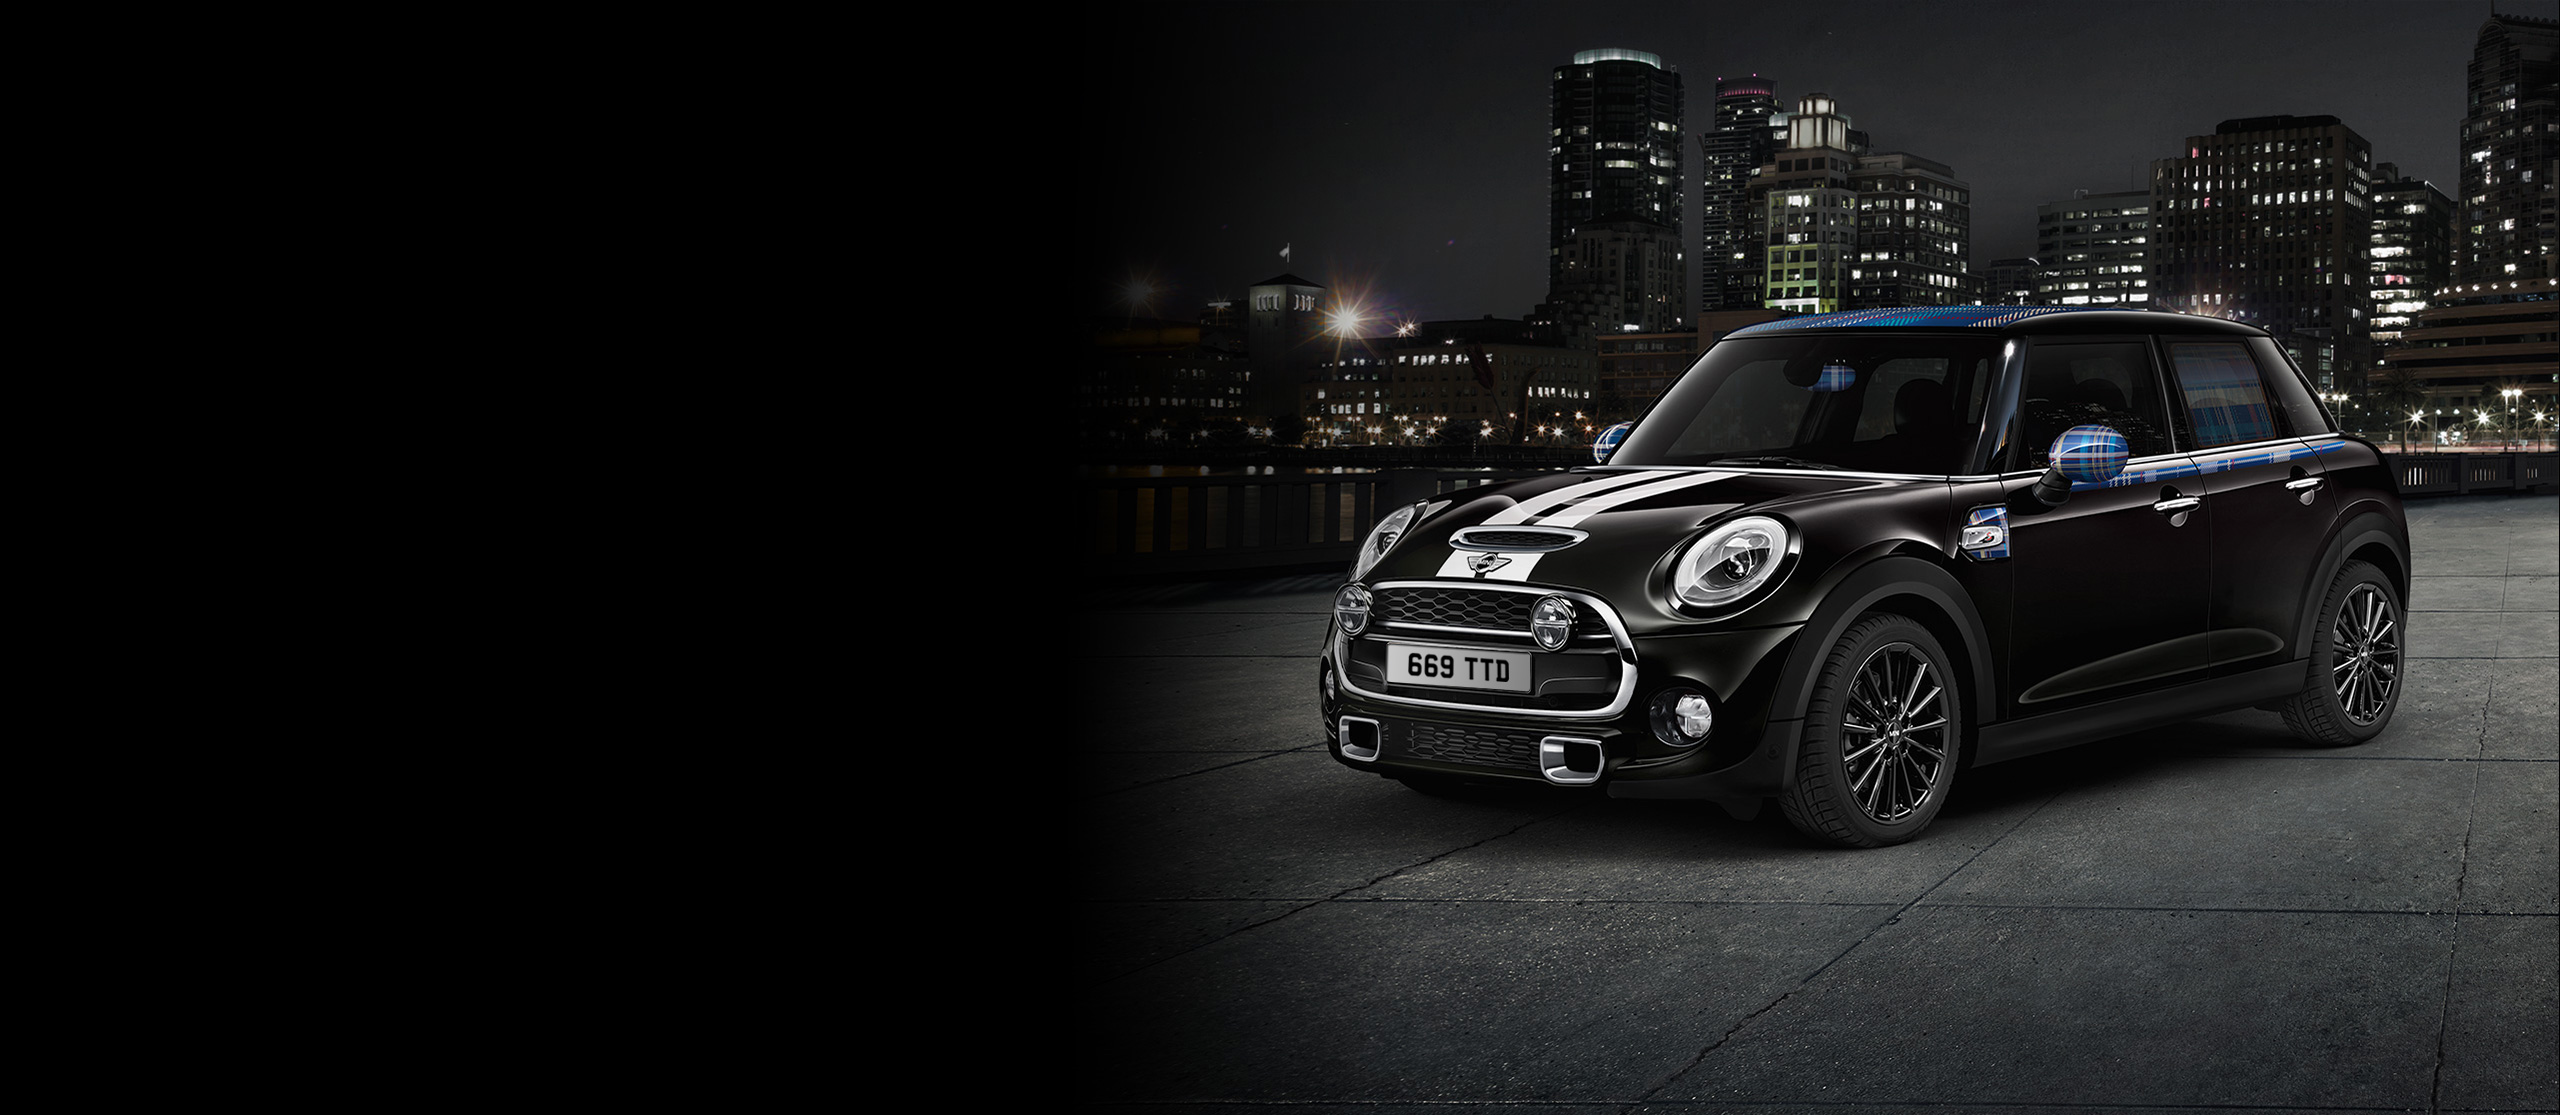 Find An Accessory John Cooper Works Tuning